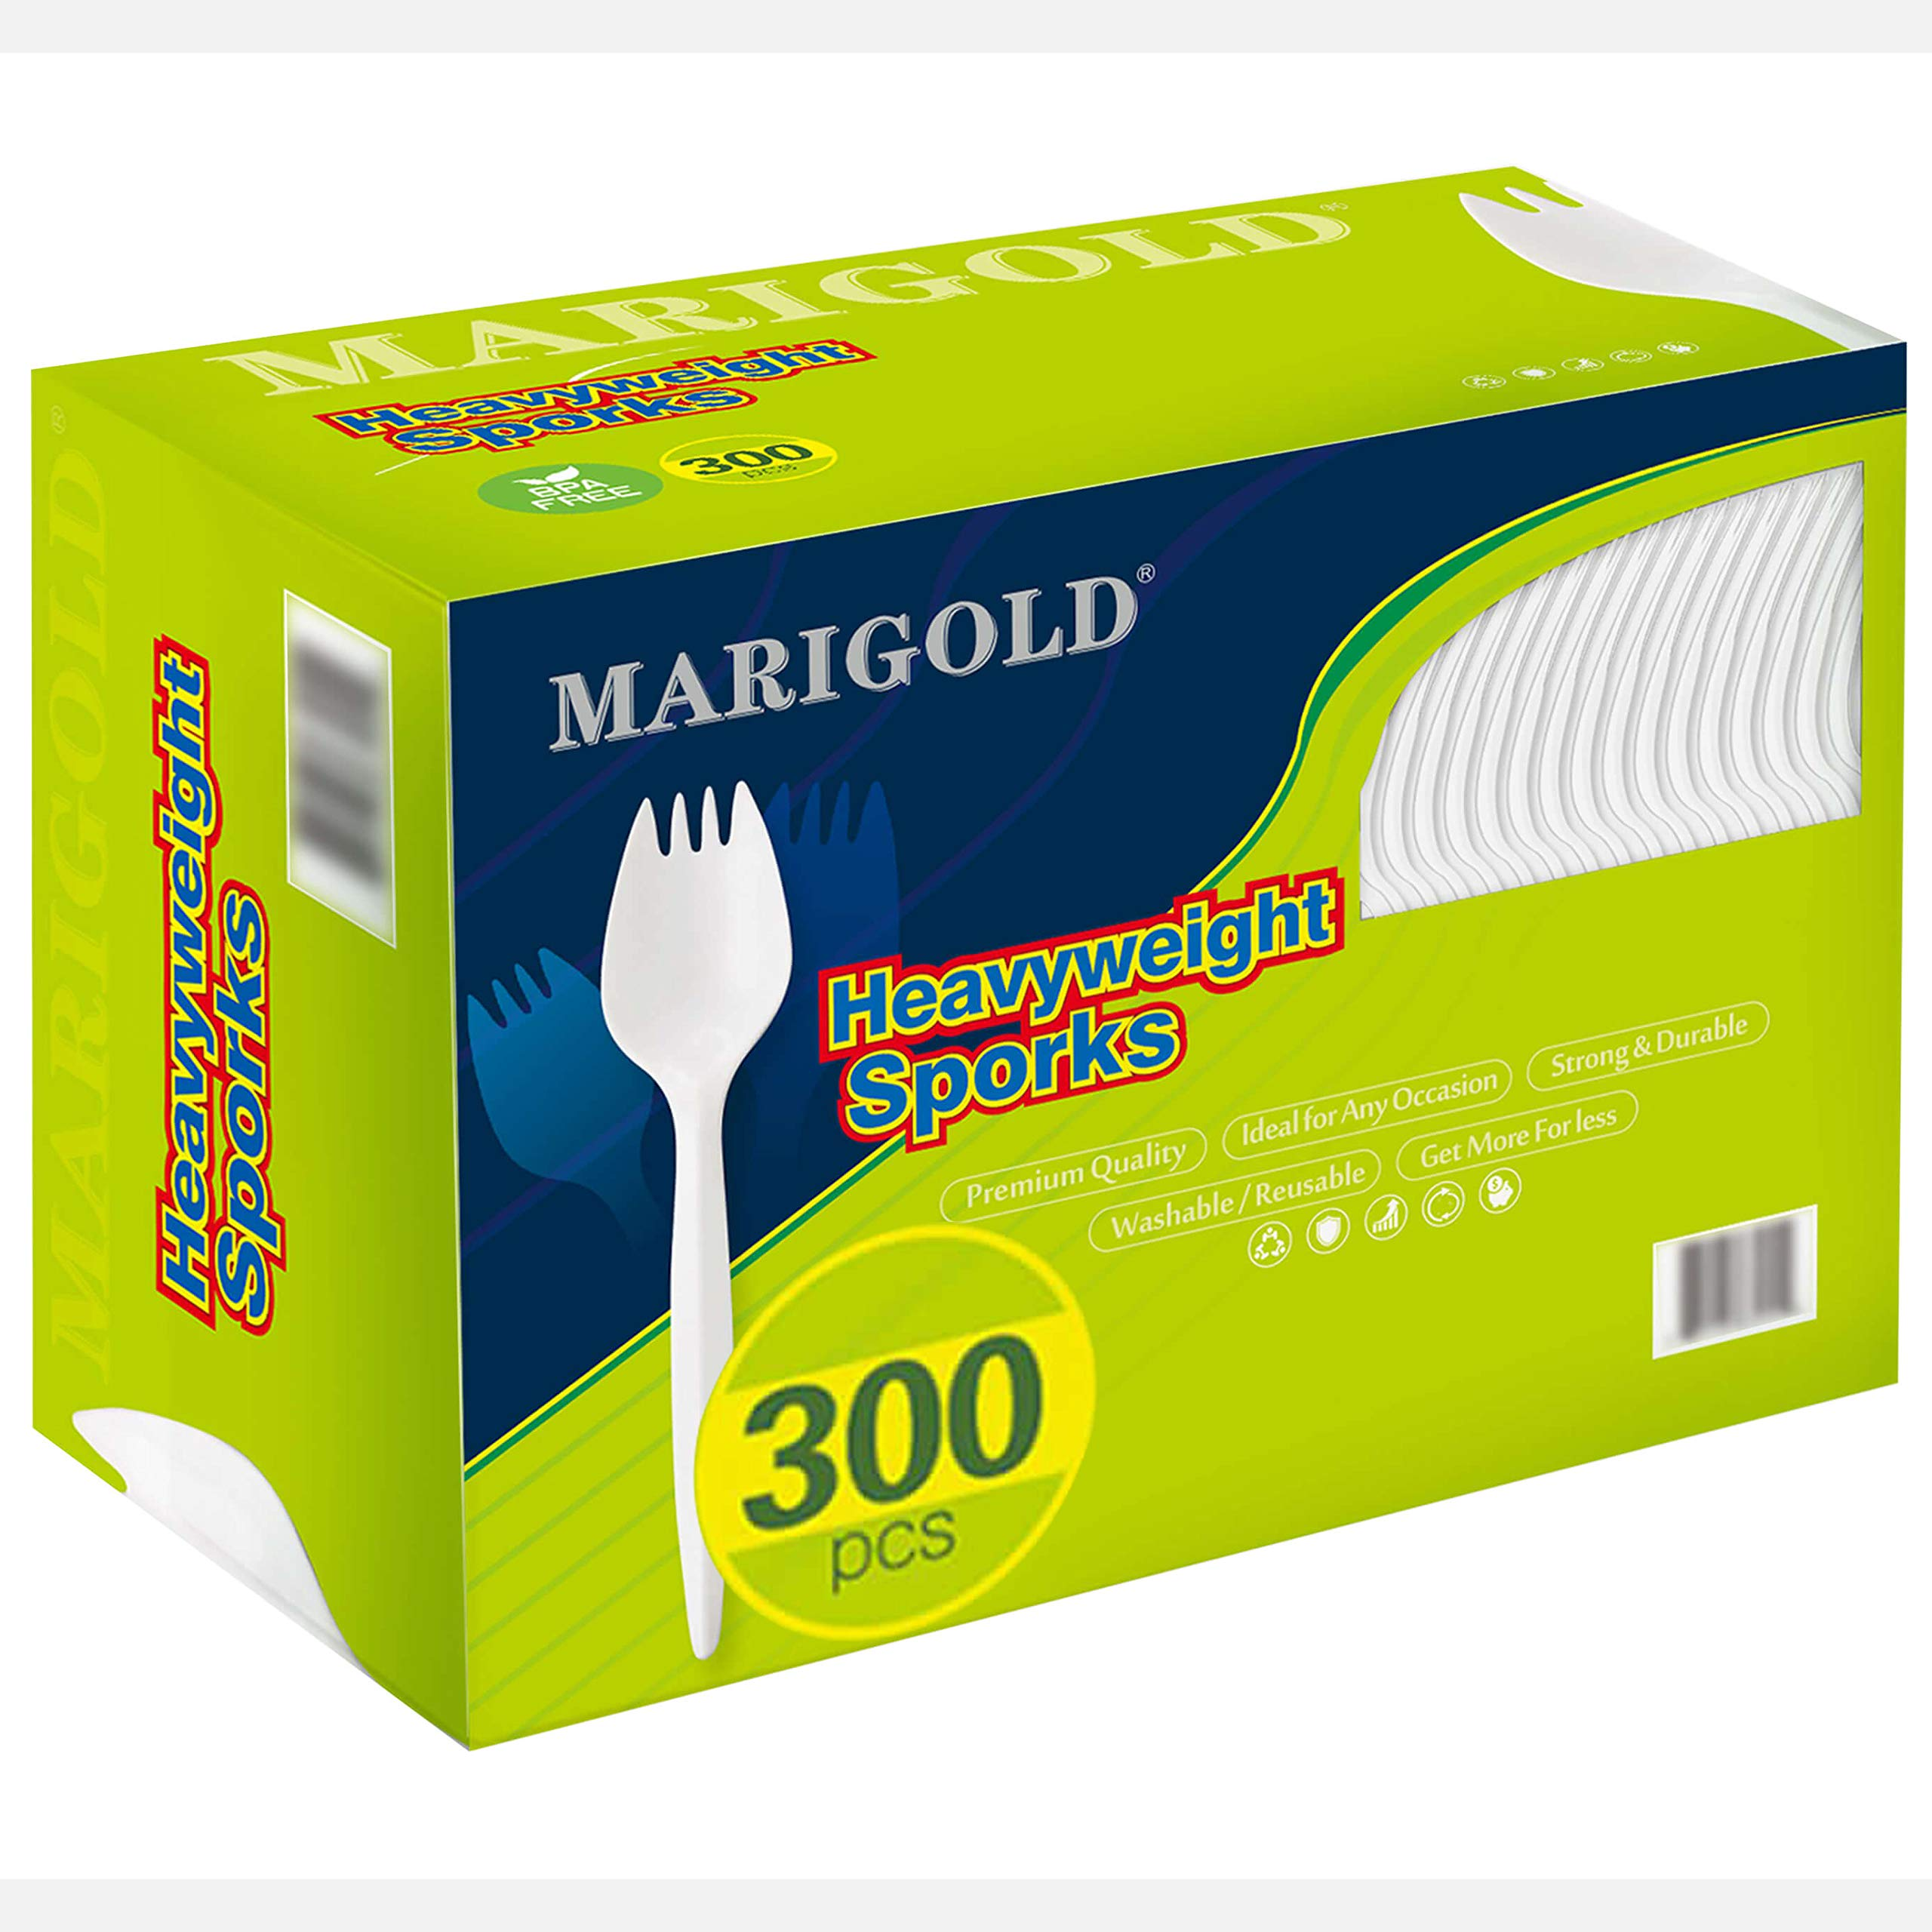 Medium-weight 300Pk Disposable Sporks BPA-Free - MARIGOLD Recyclable cutlery, Eco-Friendly and Kid-Safe Utensils, Great for School Lunch, Picnics or Restaurant and Party Supply Spoons and Forks